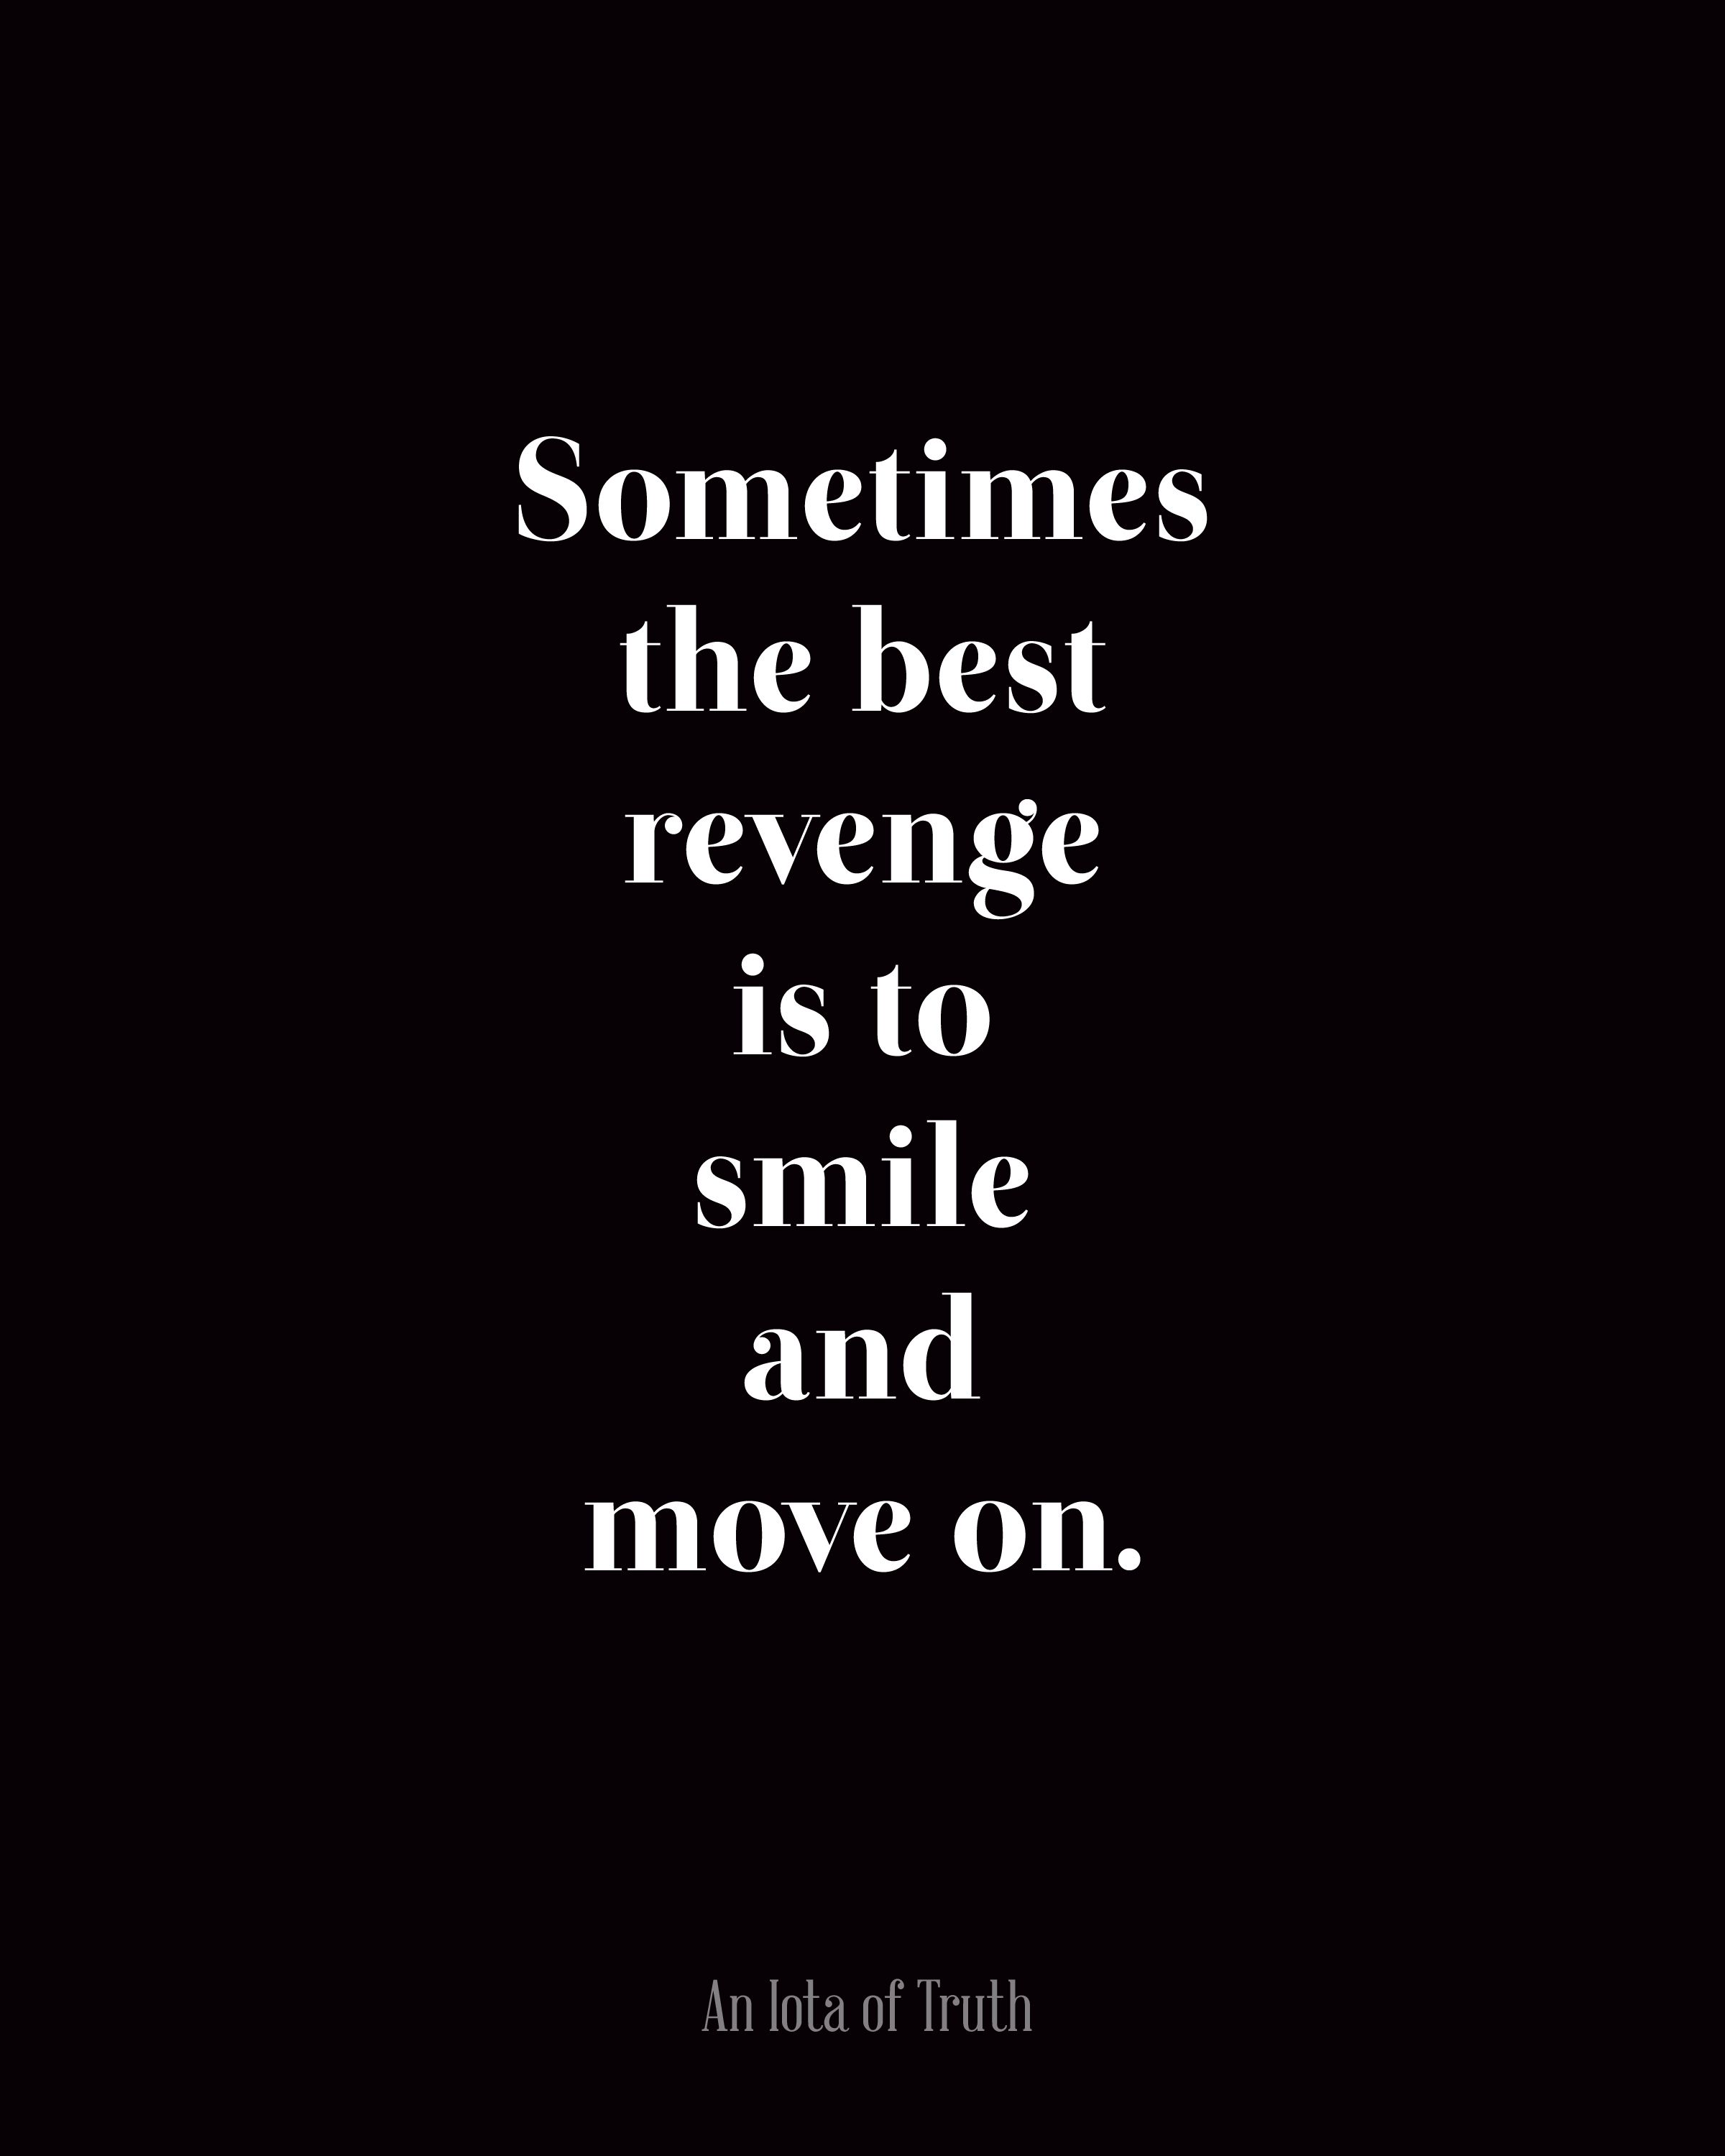 I don t feel the need to revenge but I ll smile & move on np